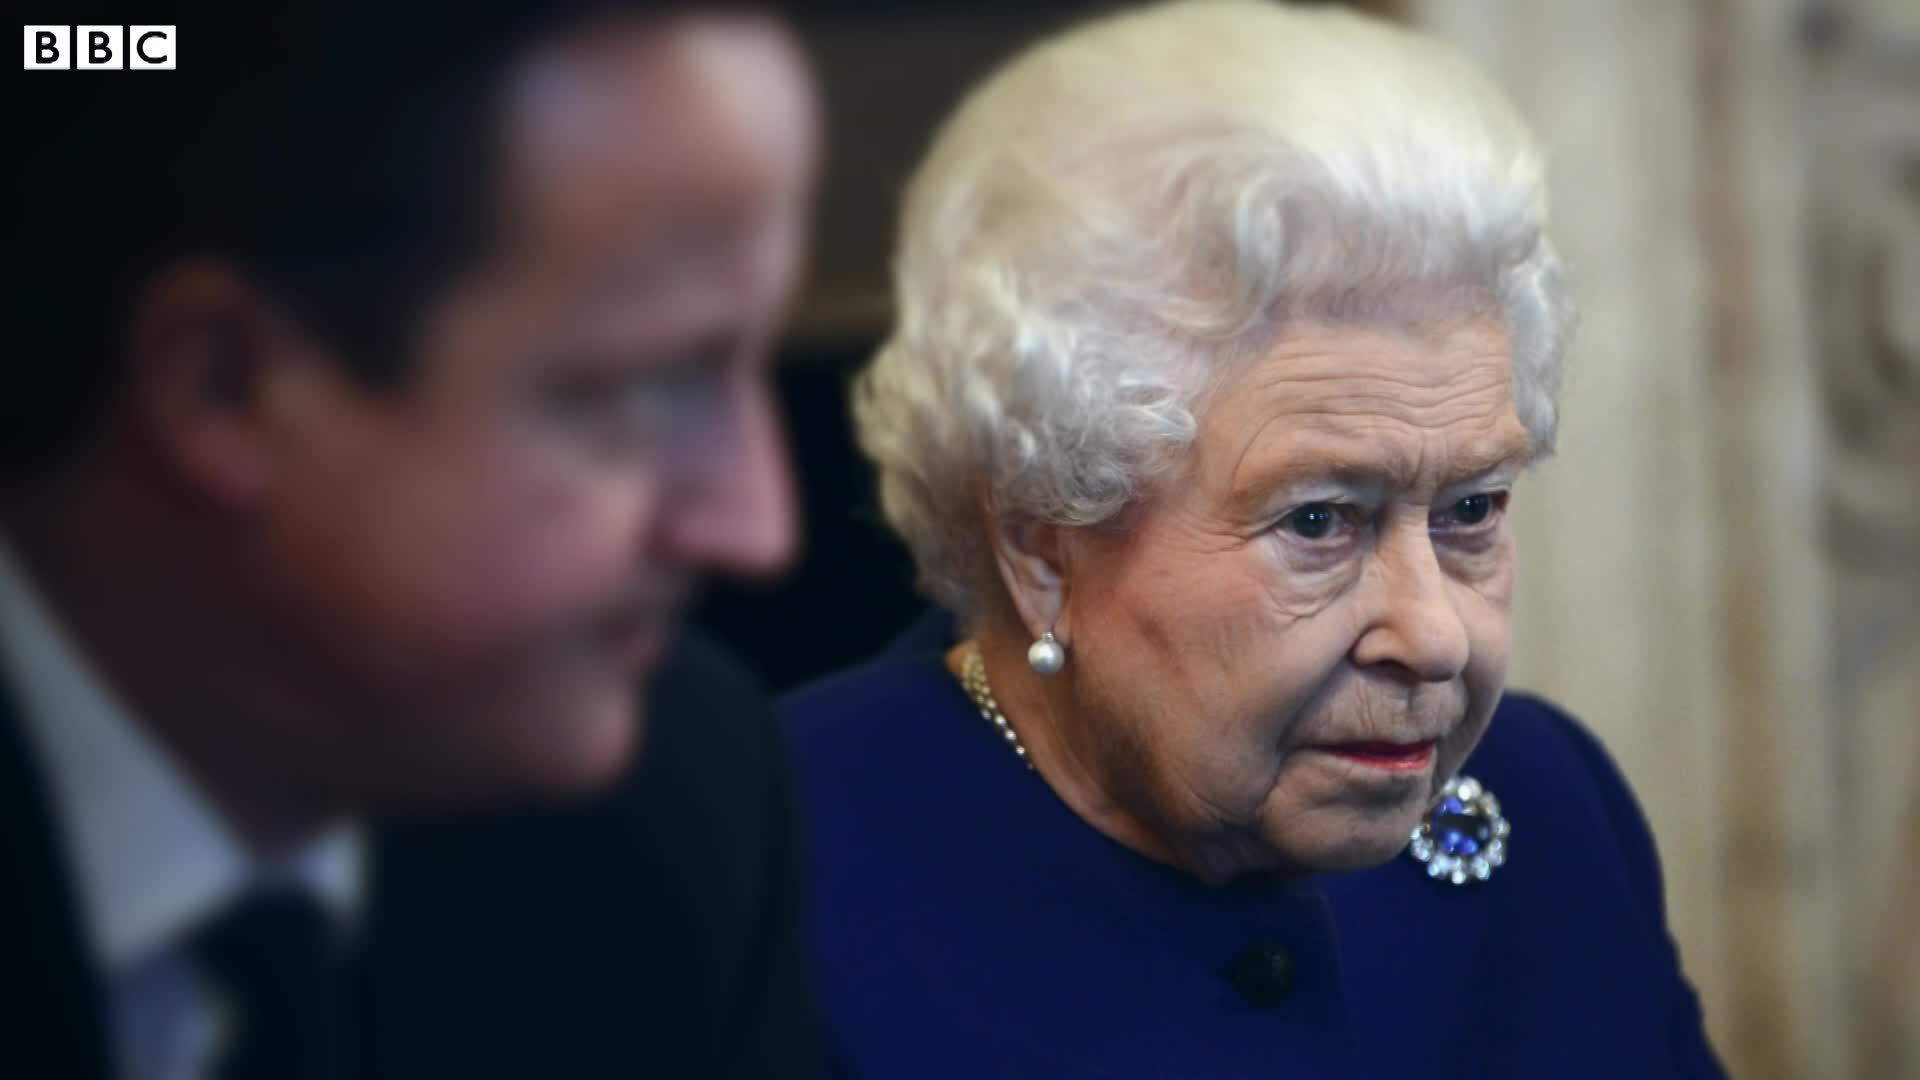 David Cameron reveals he sought Queen's help in days before Scottish independence vote